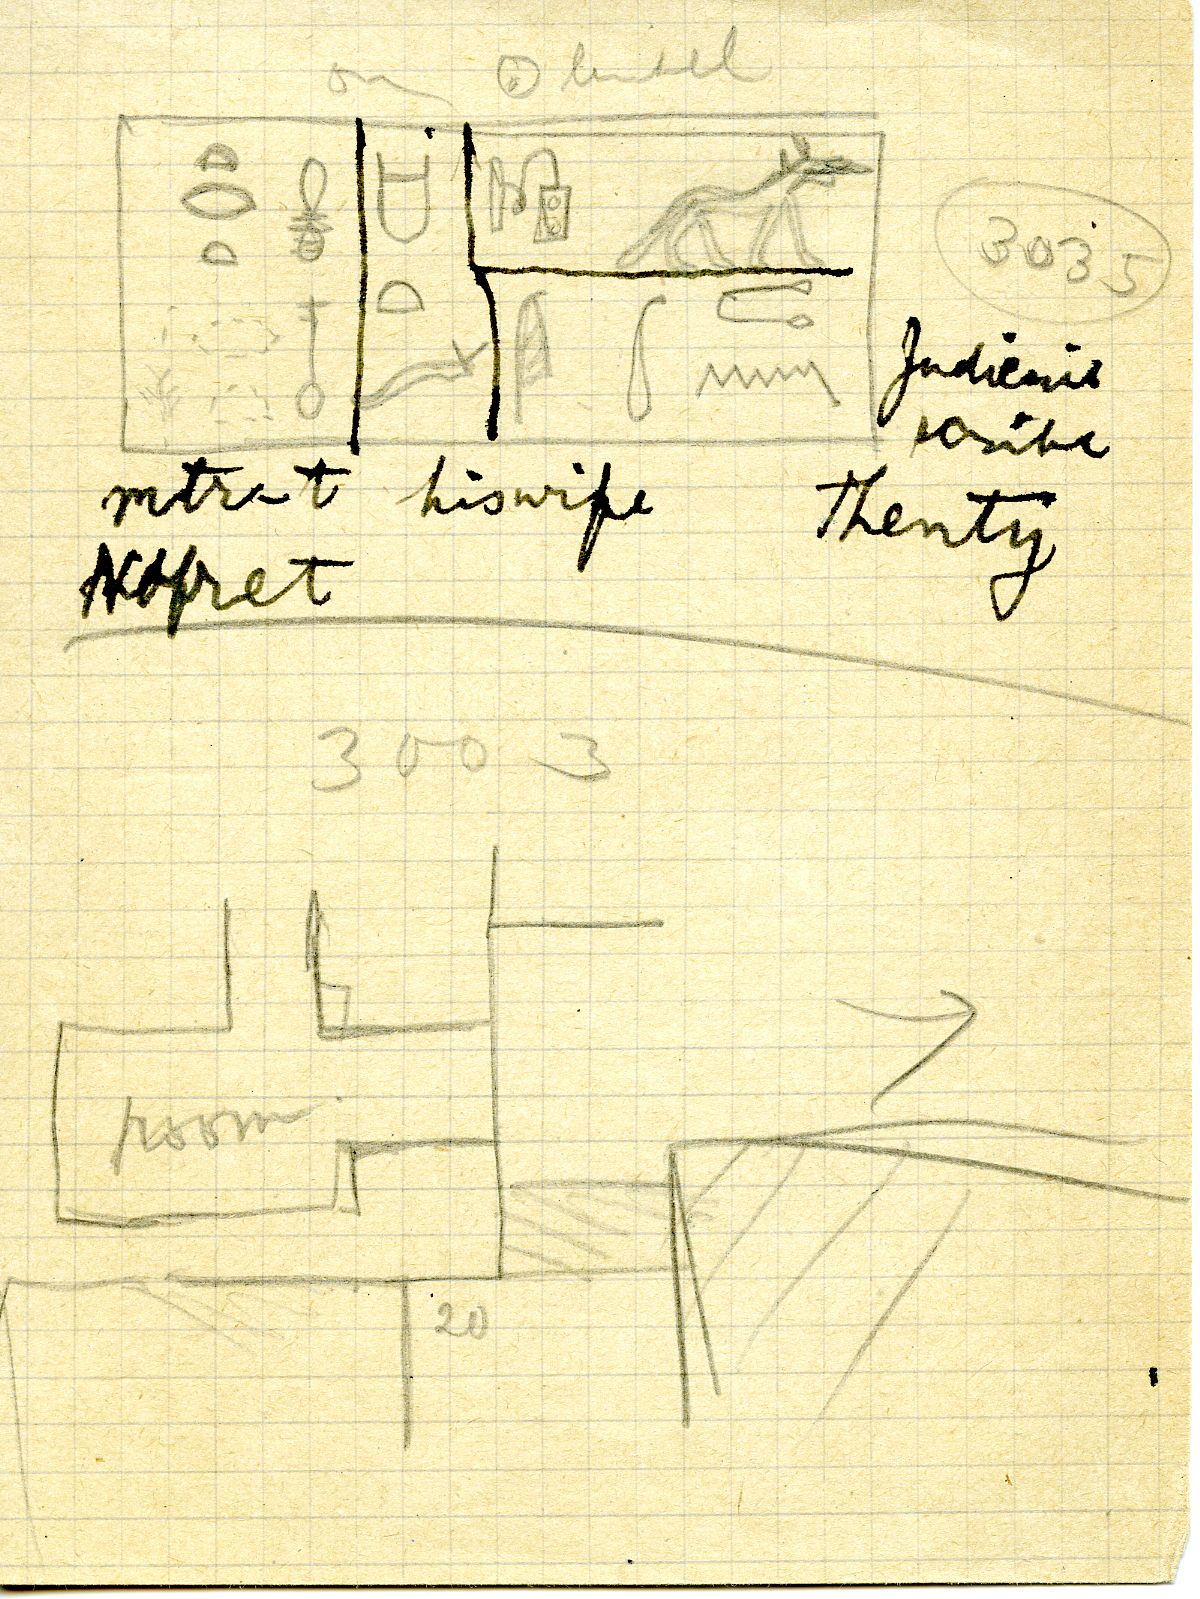 Maps and plans: G 3035, Lintel, and G 3003, Plan